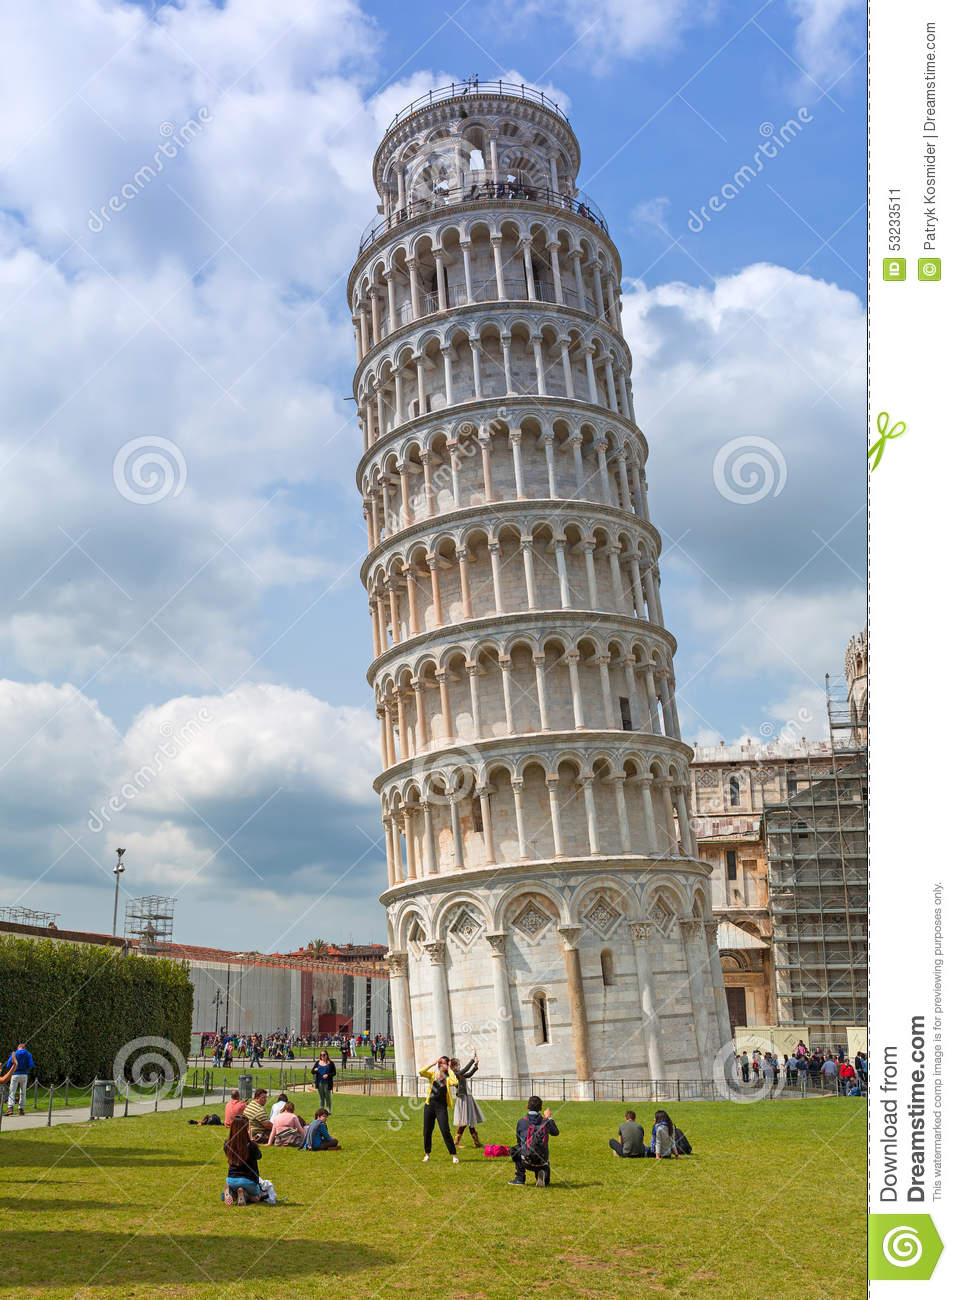 People at the leaning tower of pisa in italy editorial photo image 53233511 - Lego architecture tour de pise ...